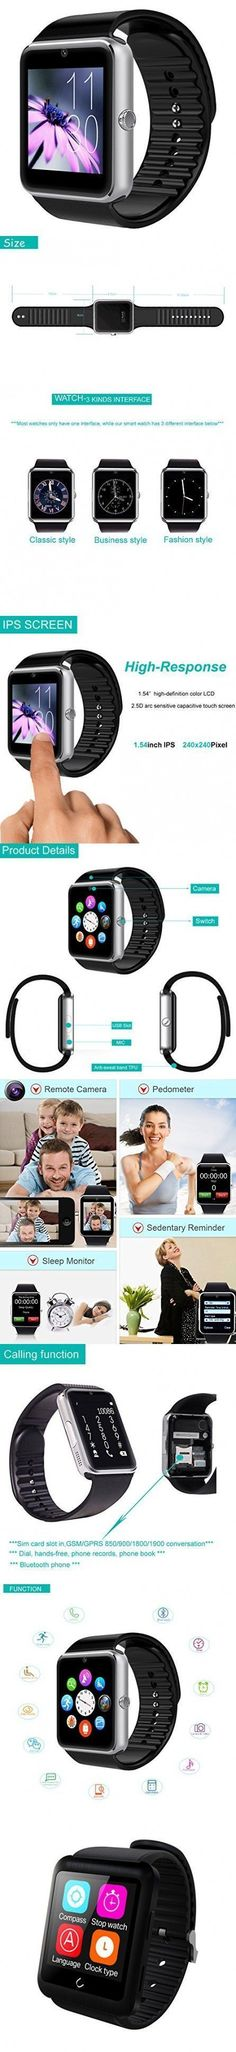 Smart Watch, YAMAY Universal Bluetooth Smartwatch Phone with Sim Card Slot Unlocked Fitness Tracker Pedometer Texting for iPhone Android Samsung LG Phones for Running Sport Outdoor Women Men Girls #LGPhones #andriodwatchesforwomen